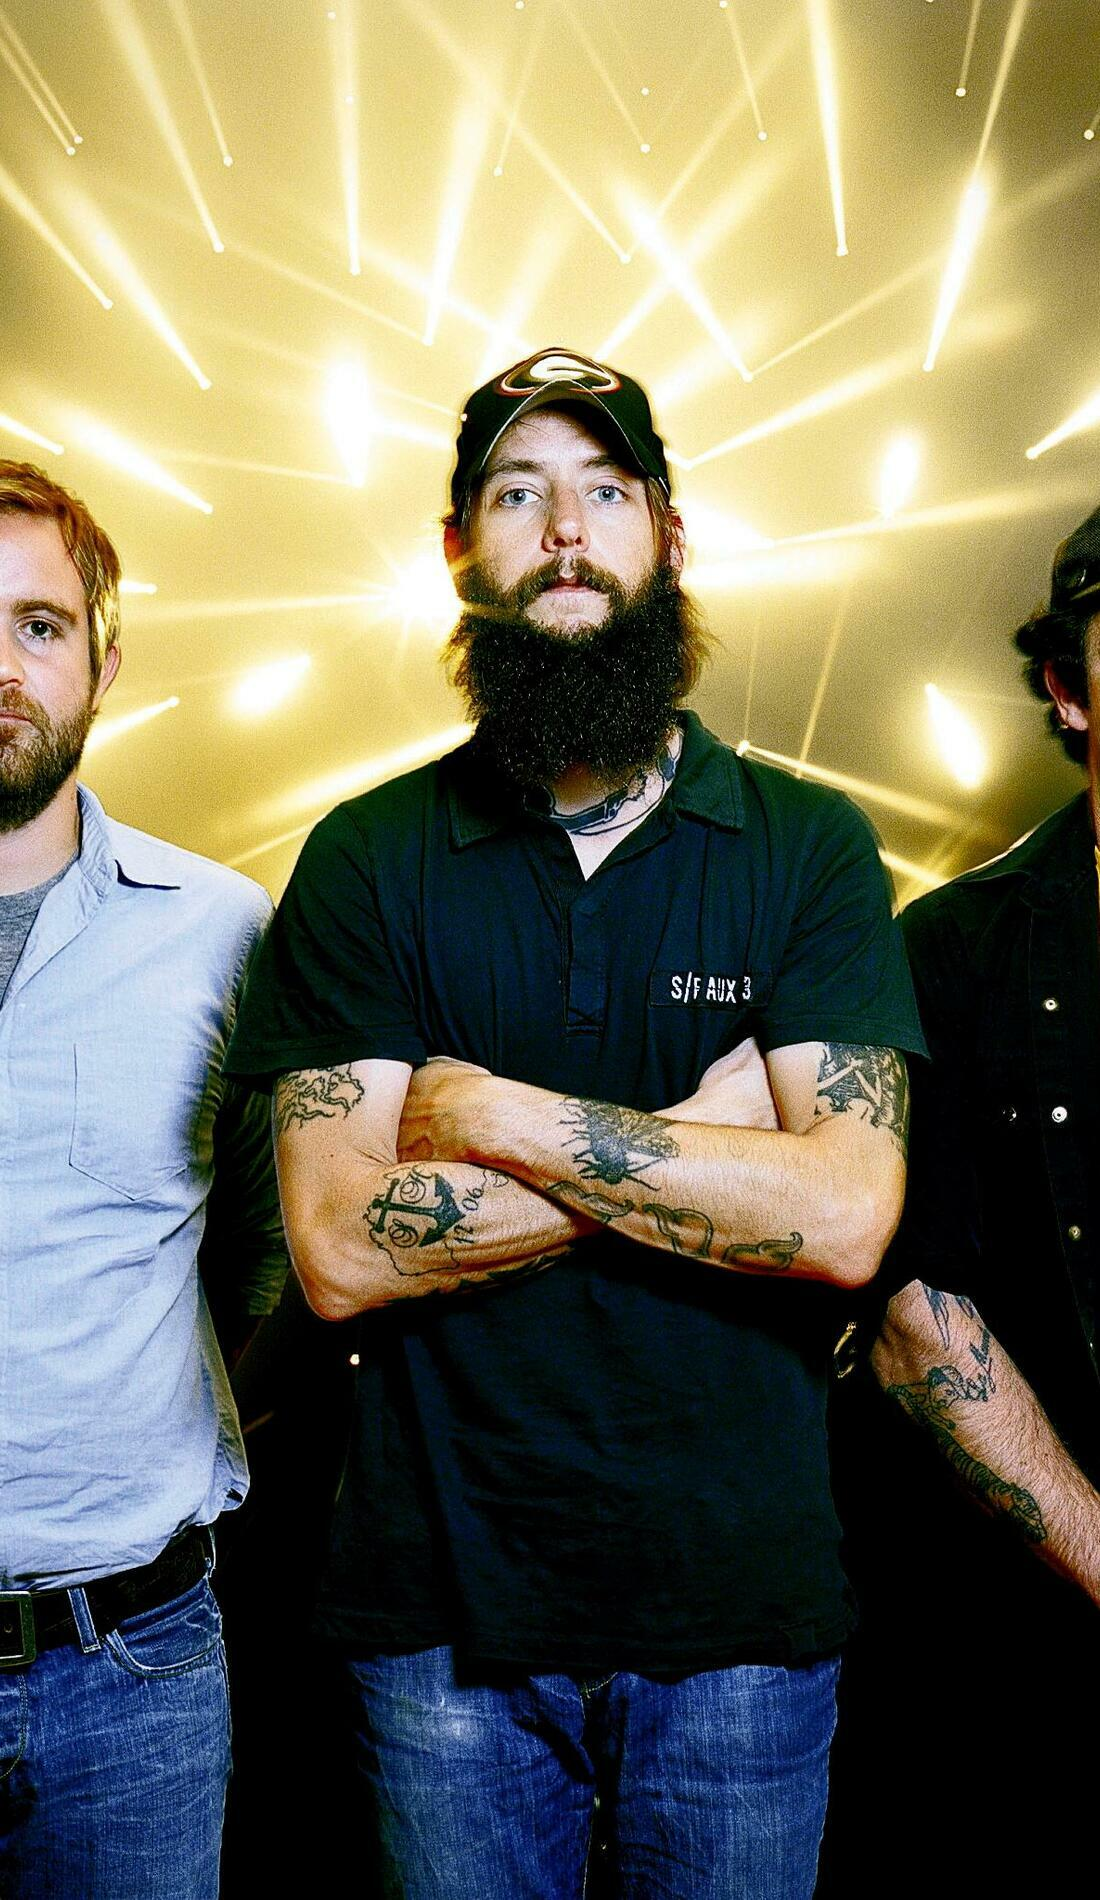 A Band of Horses live event